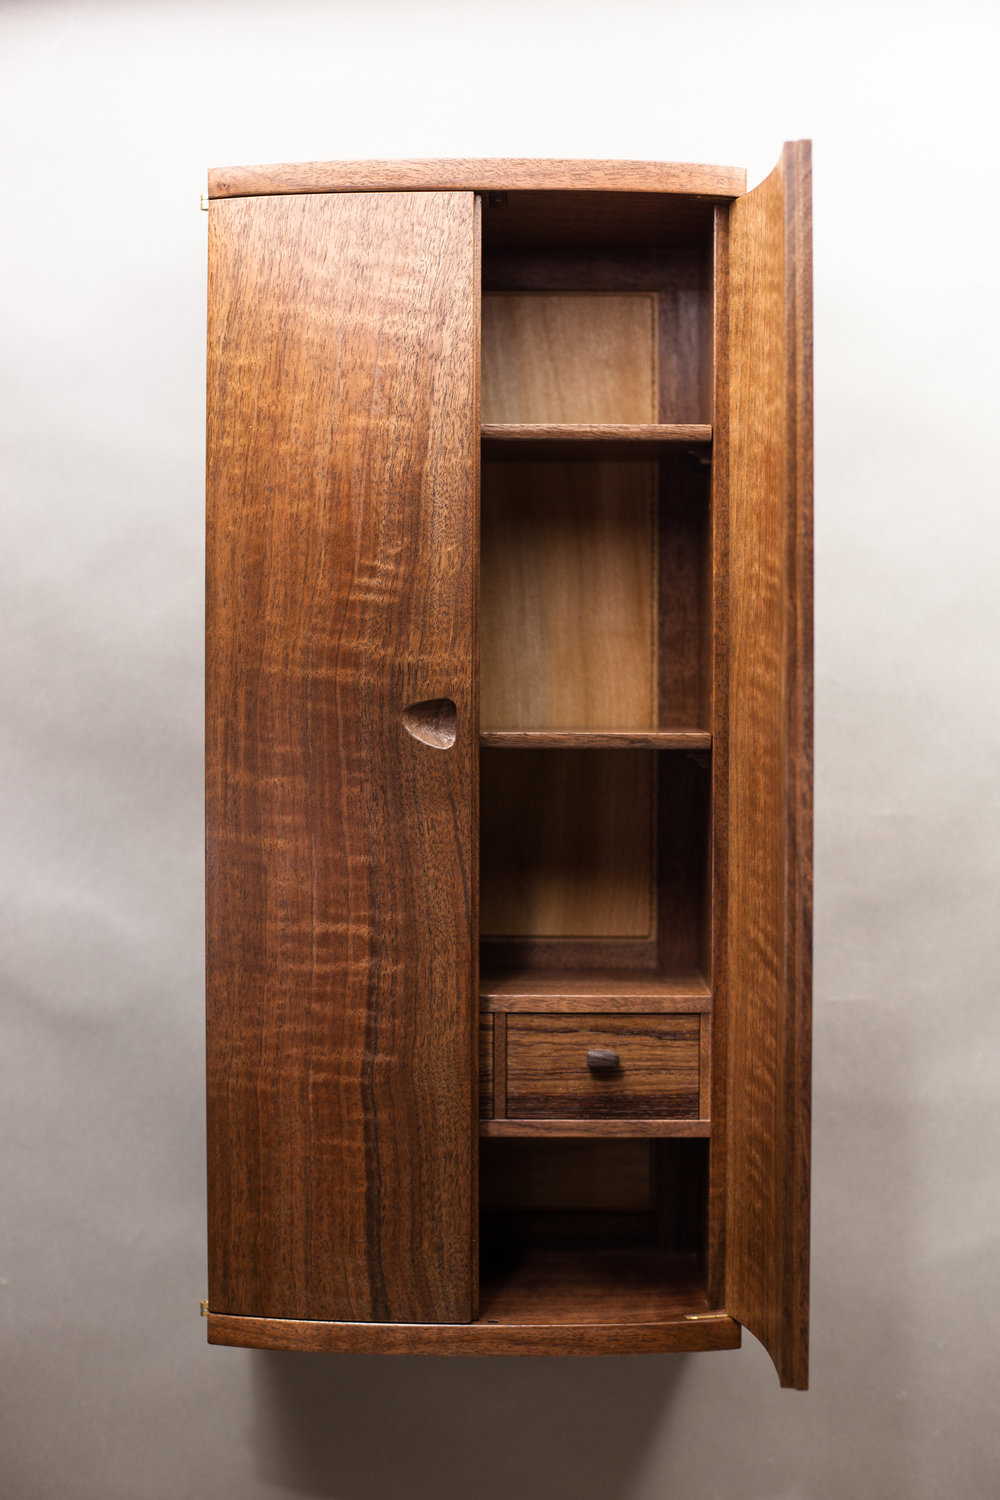 Interior of Upward Spiral Cabinet by  Tim Andries   Photography by Tim Andries